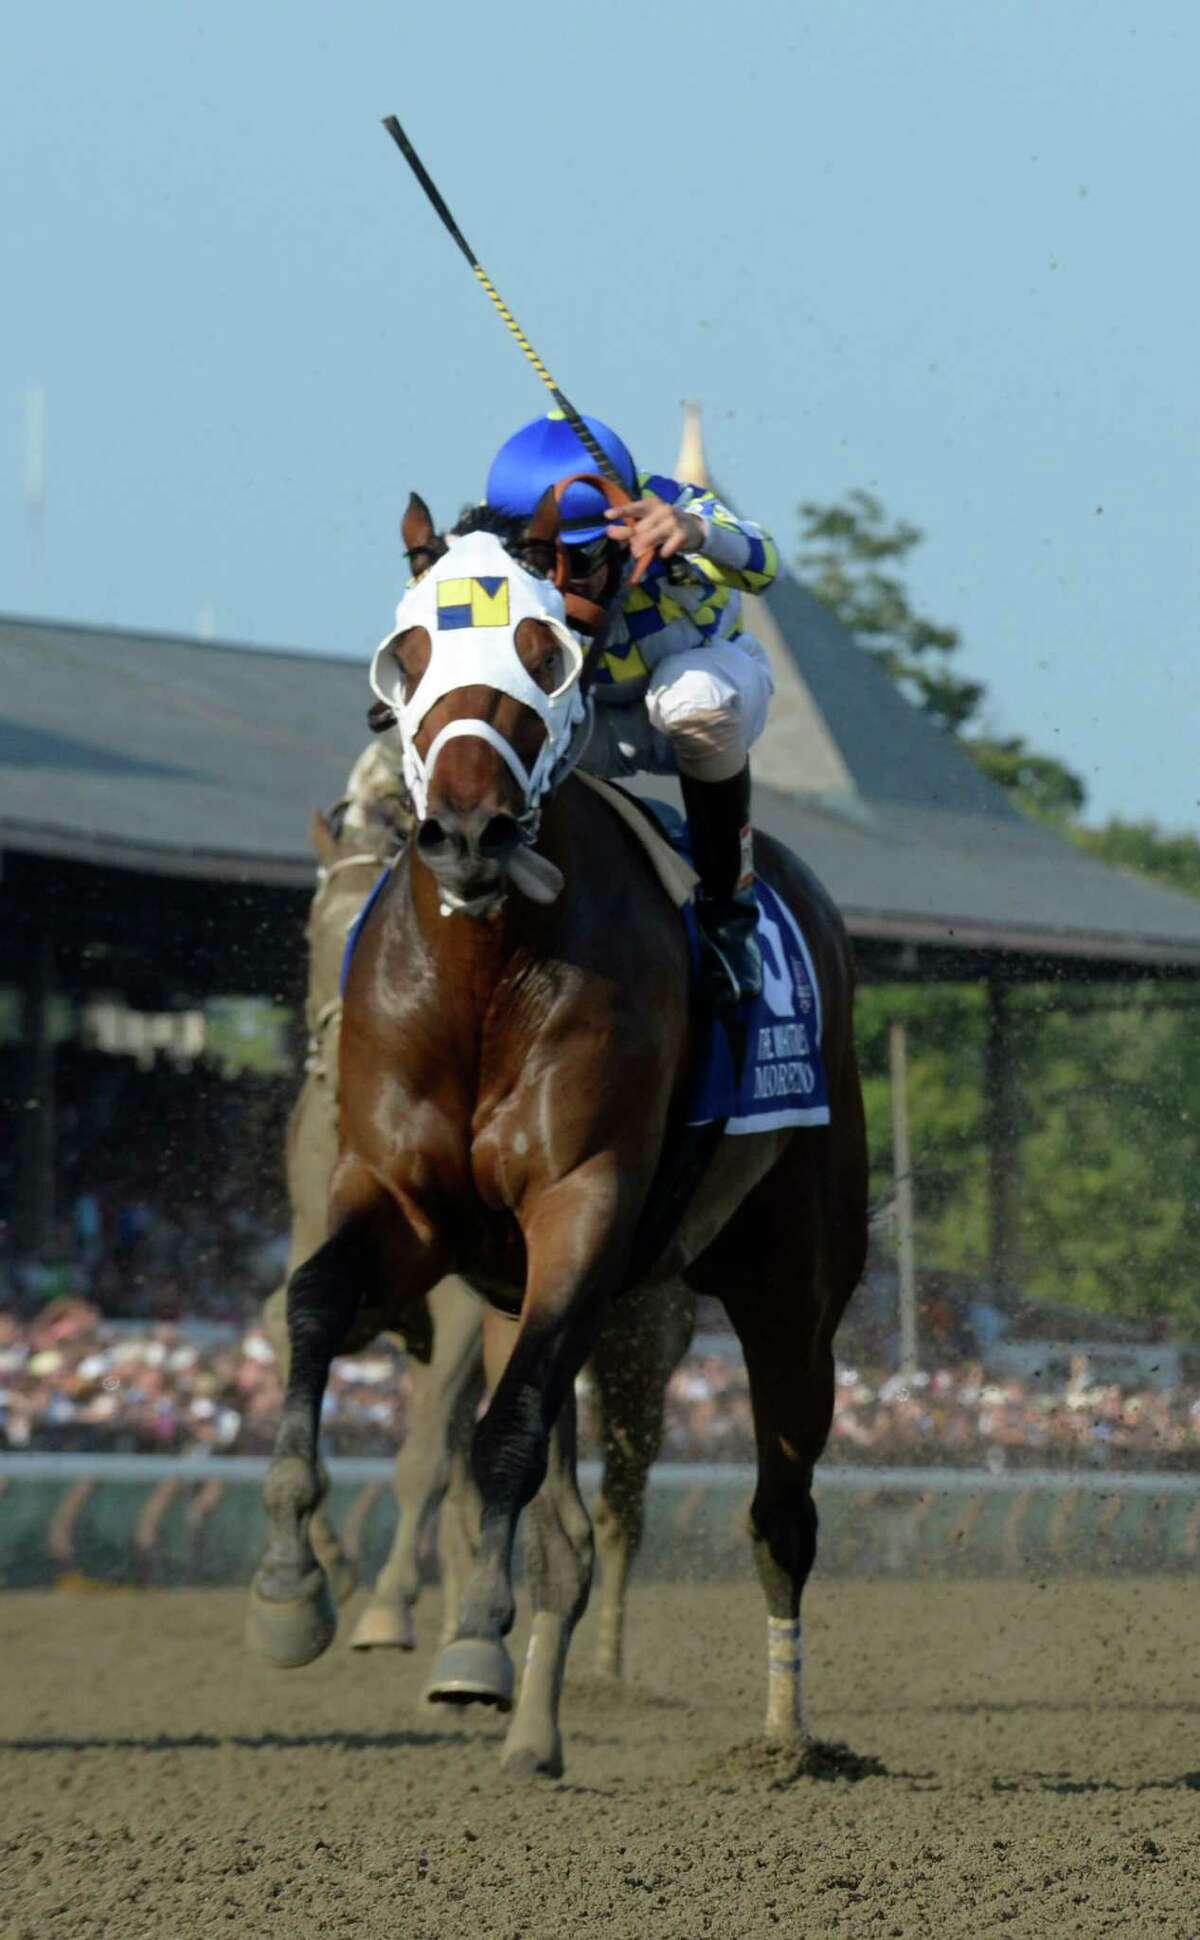 Moreno ridden by jockey Junior Alvarado outlasted the field to win the 87th running of The Whitney Saturday afternoon Aug. 2, 2014 at the Saratoga Race Course in Saratoga Springs, N.Y. (Skip Dickstein/Times Union) ORG XMIT: NYALT